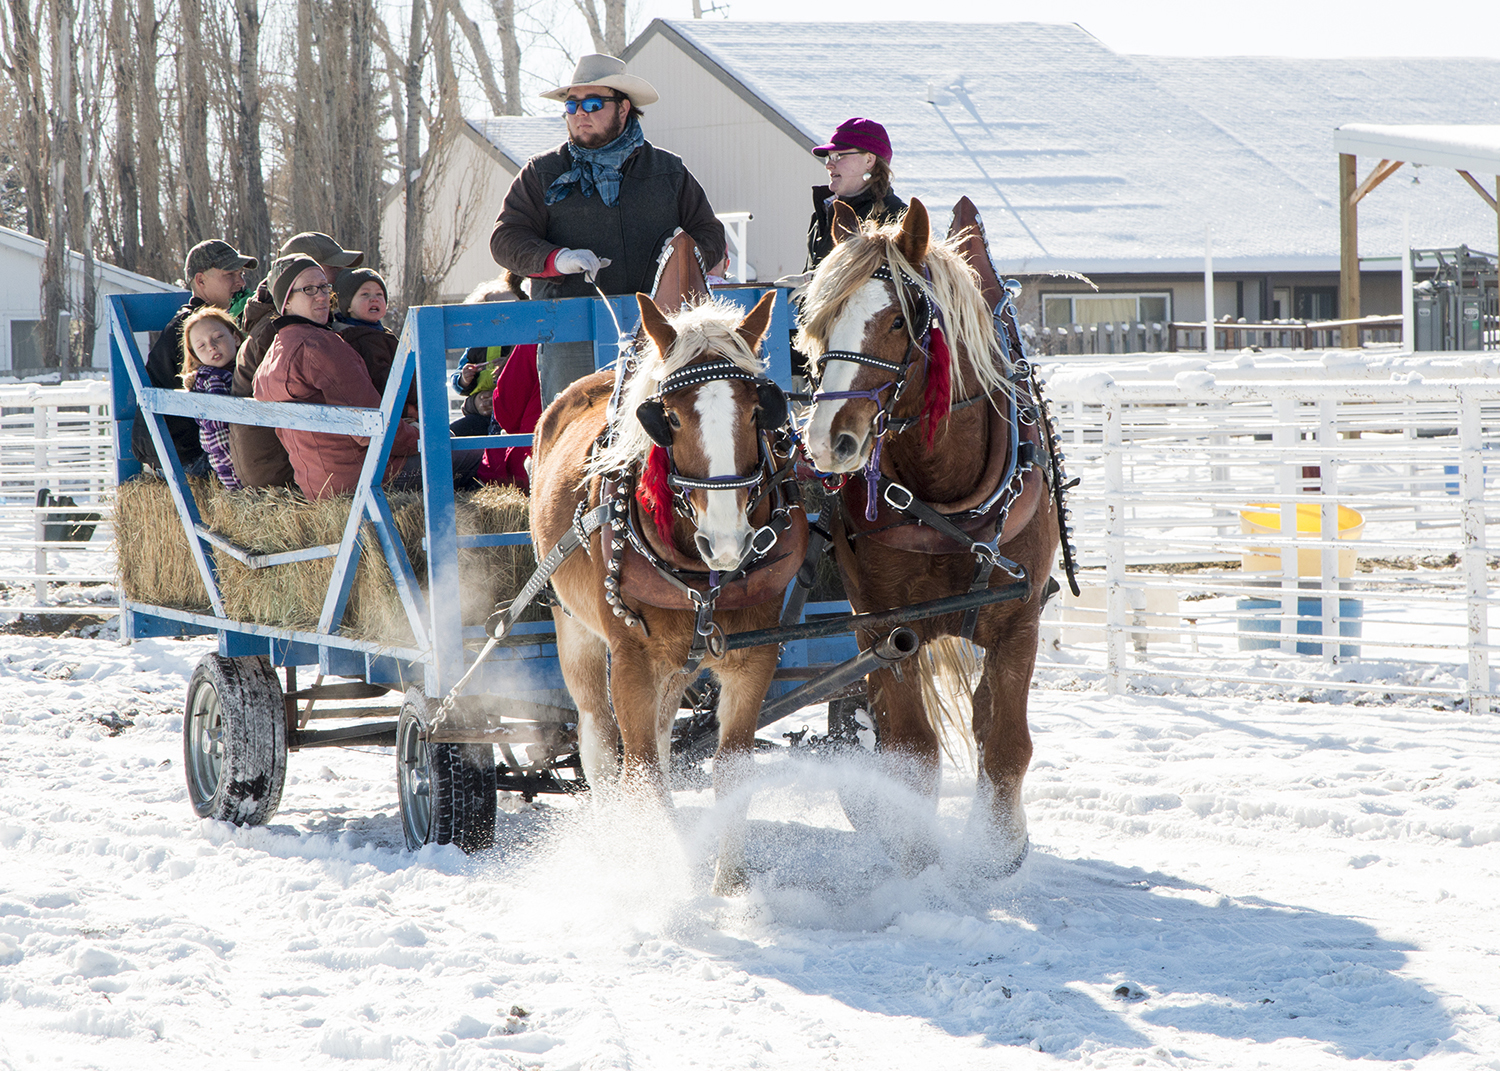 Family enjoying a sleigh ride